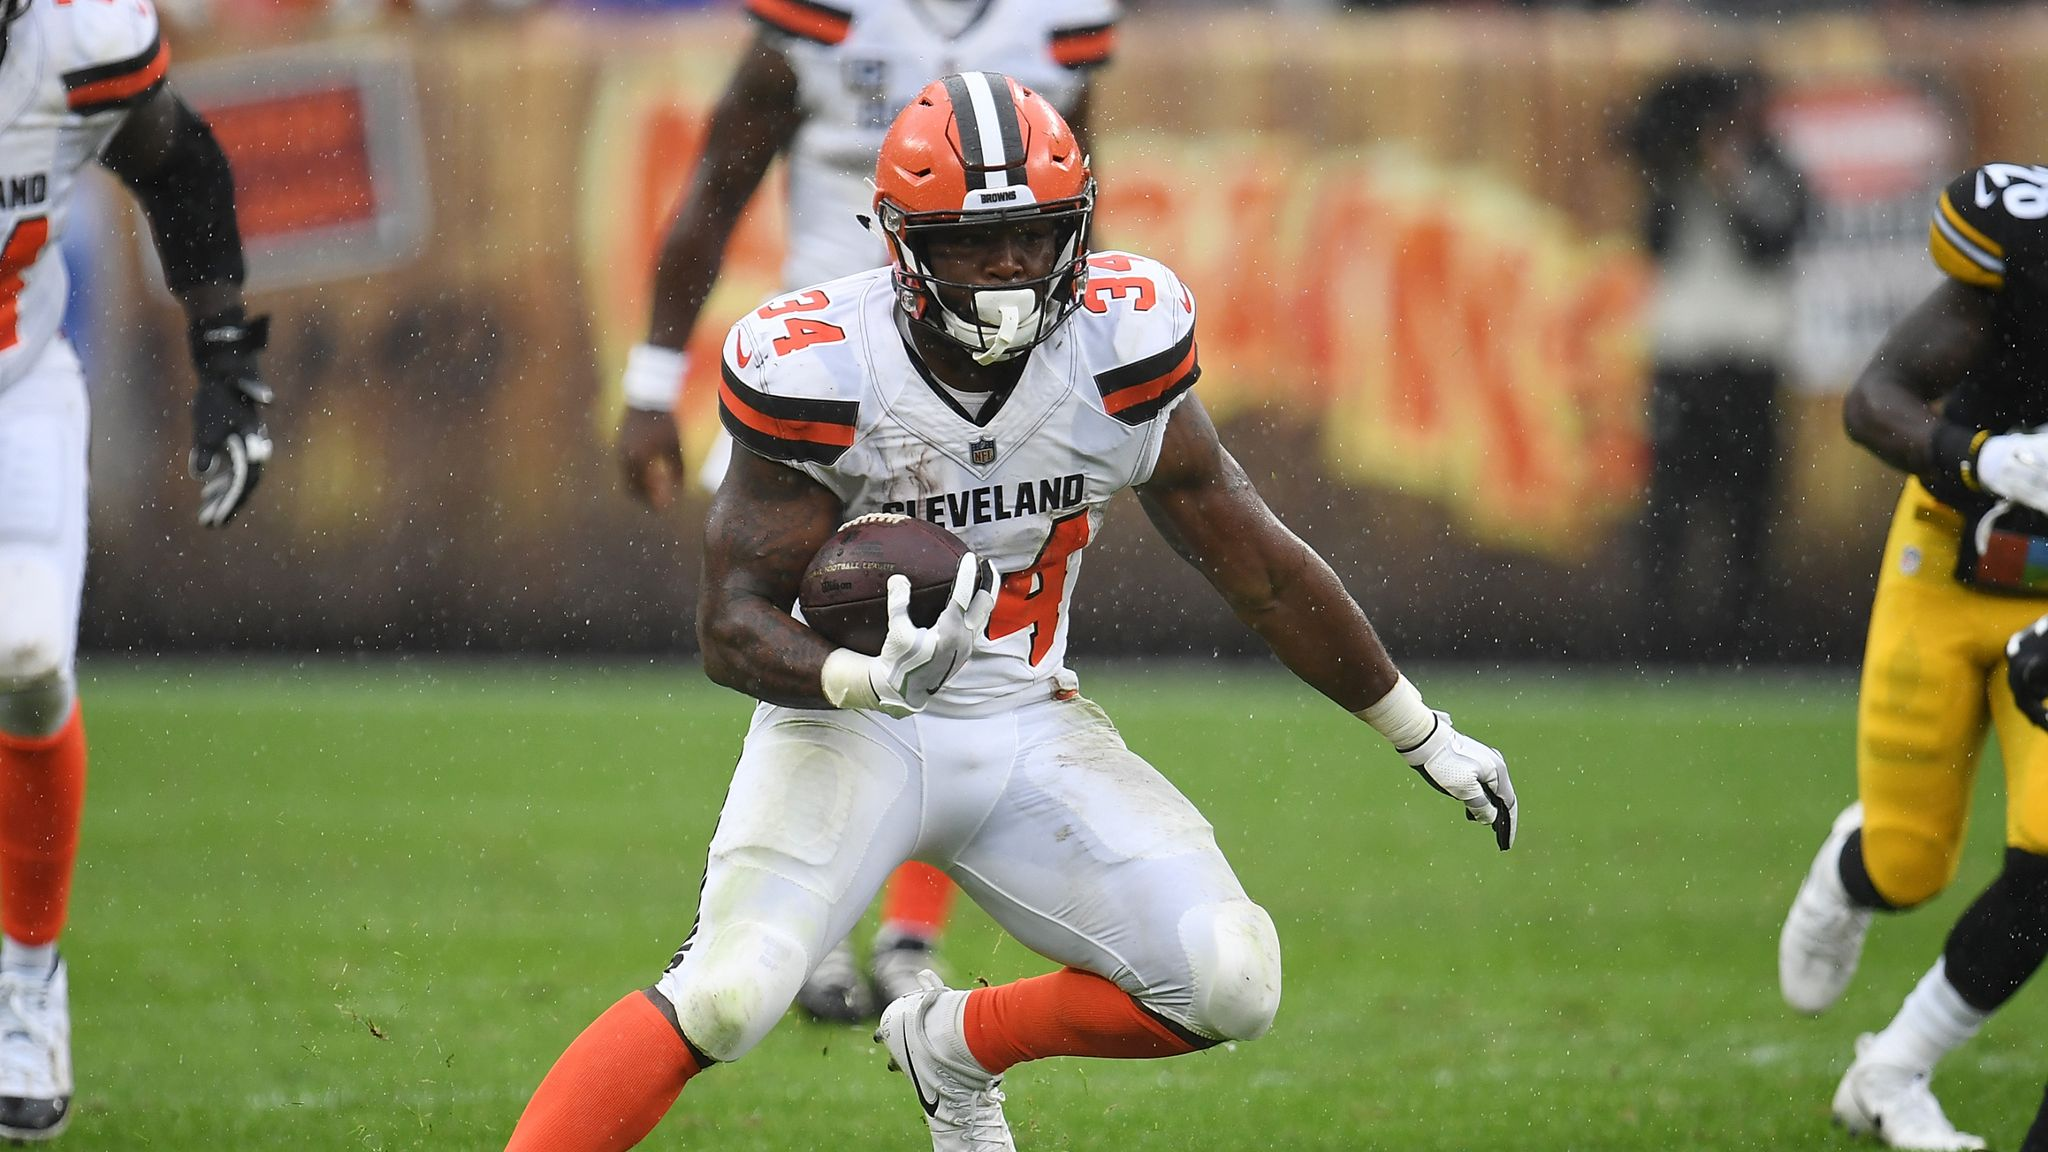 finest selection 15ea2 75cf2 Carlos Hyde joins Jacksonville Jaguars from Cleveland Browns ...